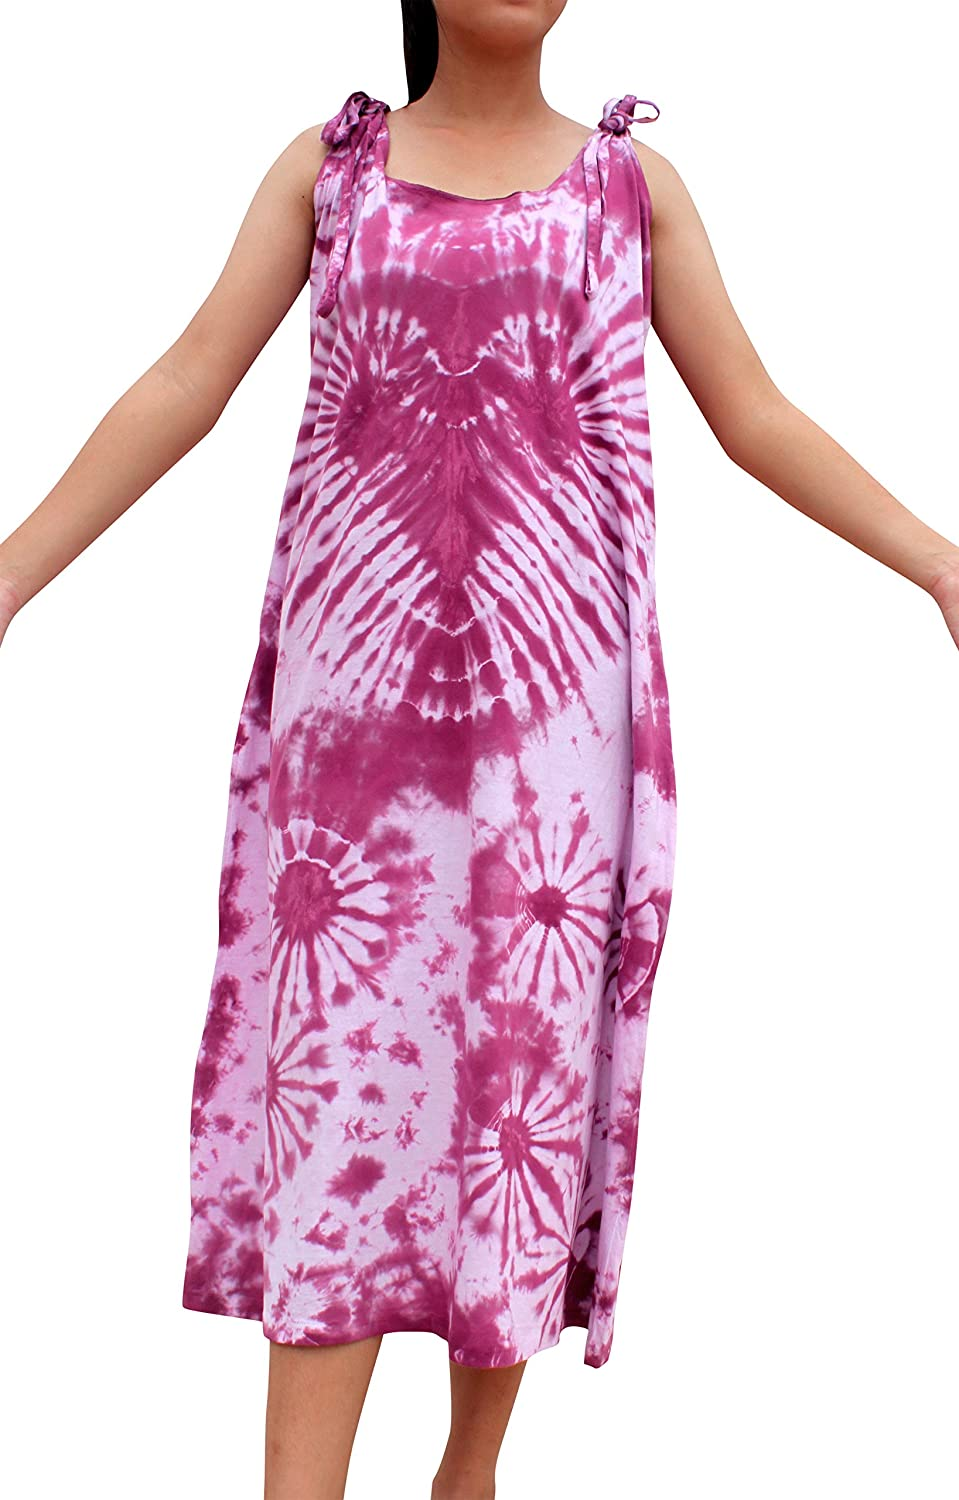 Plum Purple Full Funk Psychedelic Woven Cotton Tie Dyed Dress with Adjustable Shoulder Straps